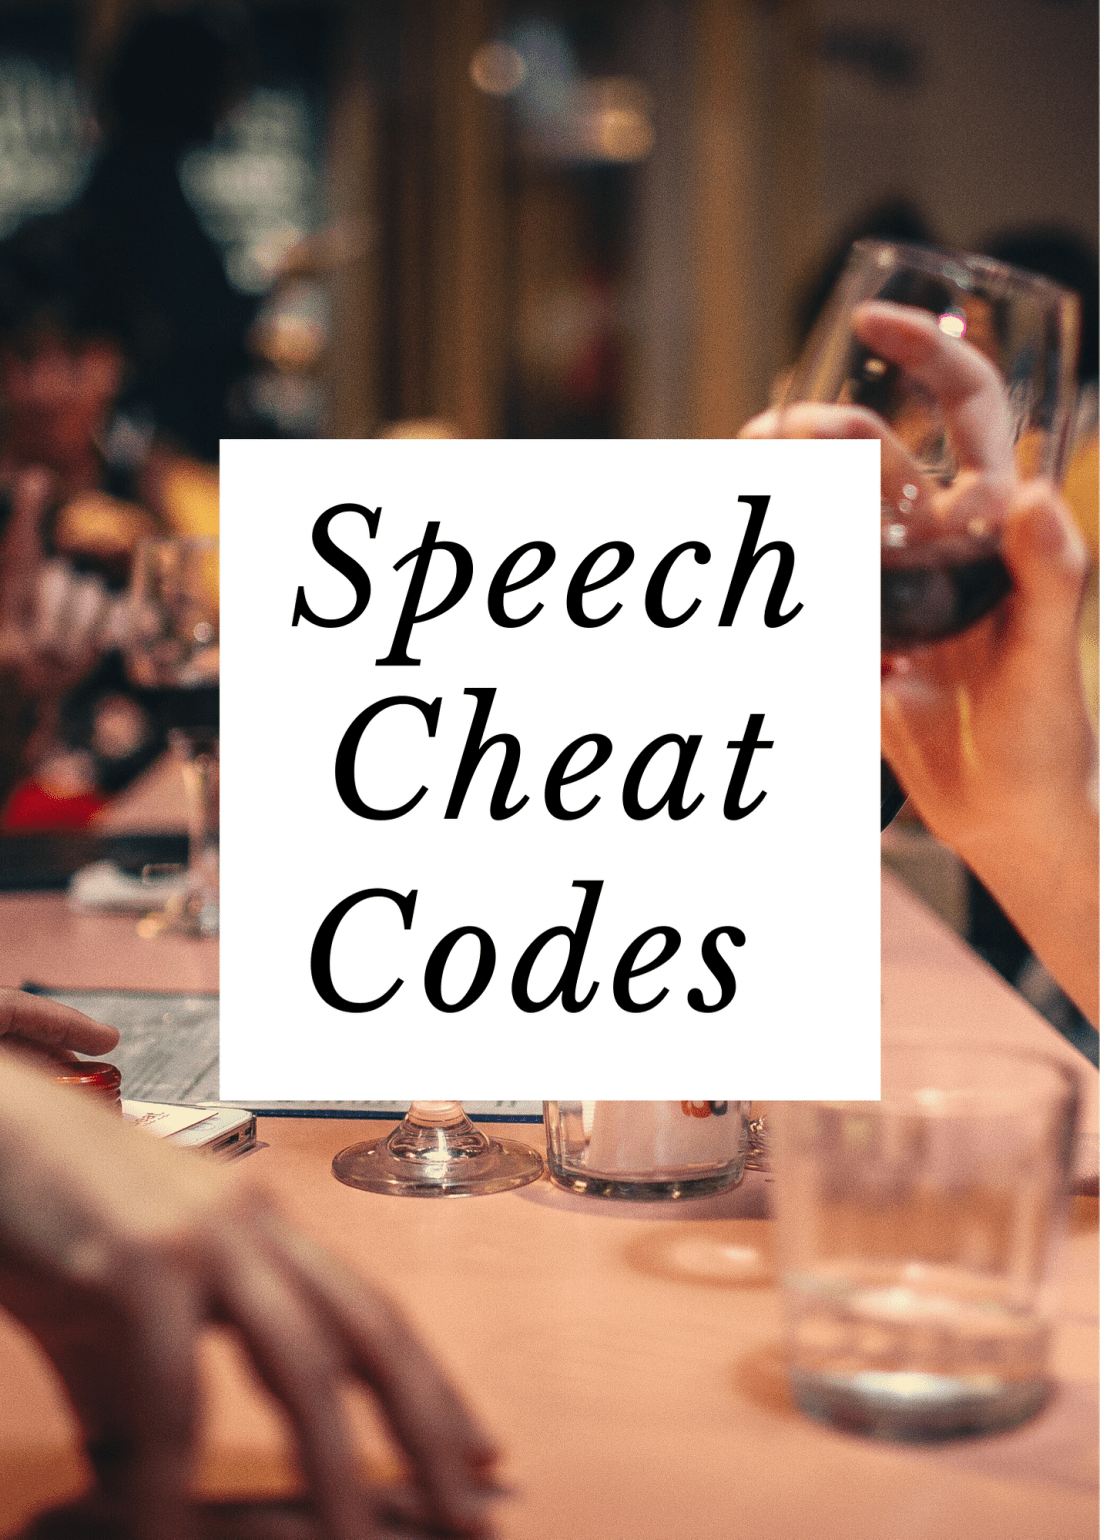 Speech Cheat Codes